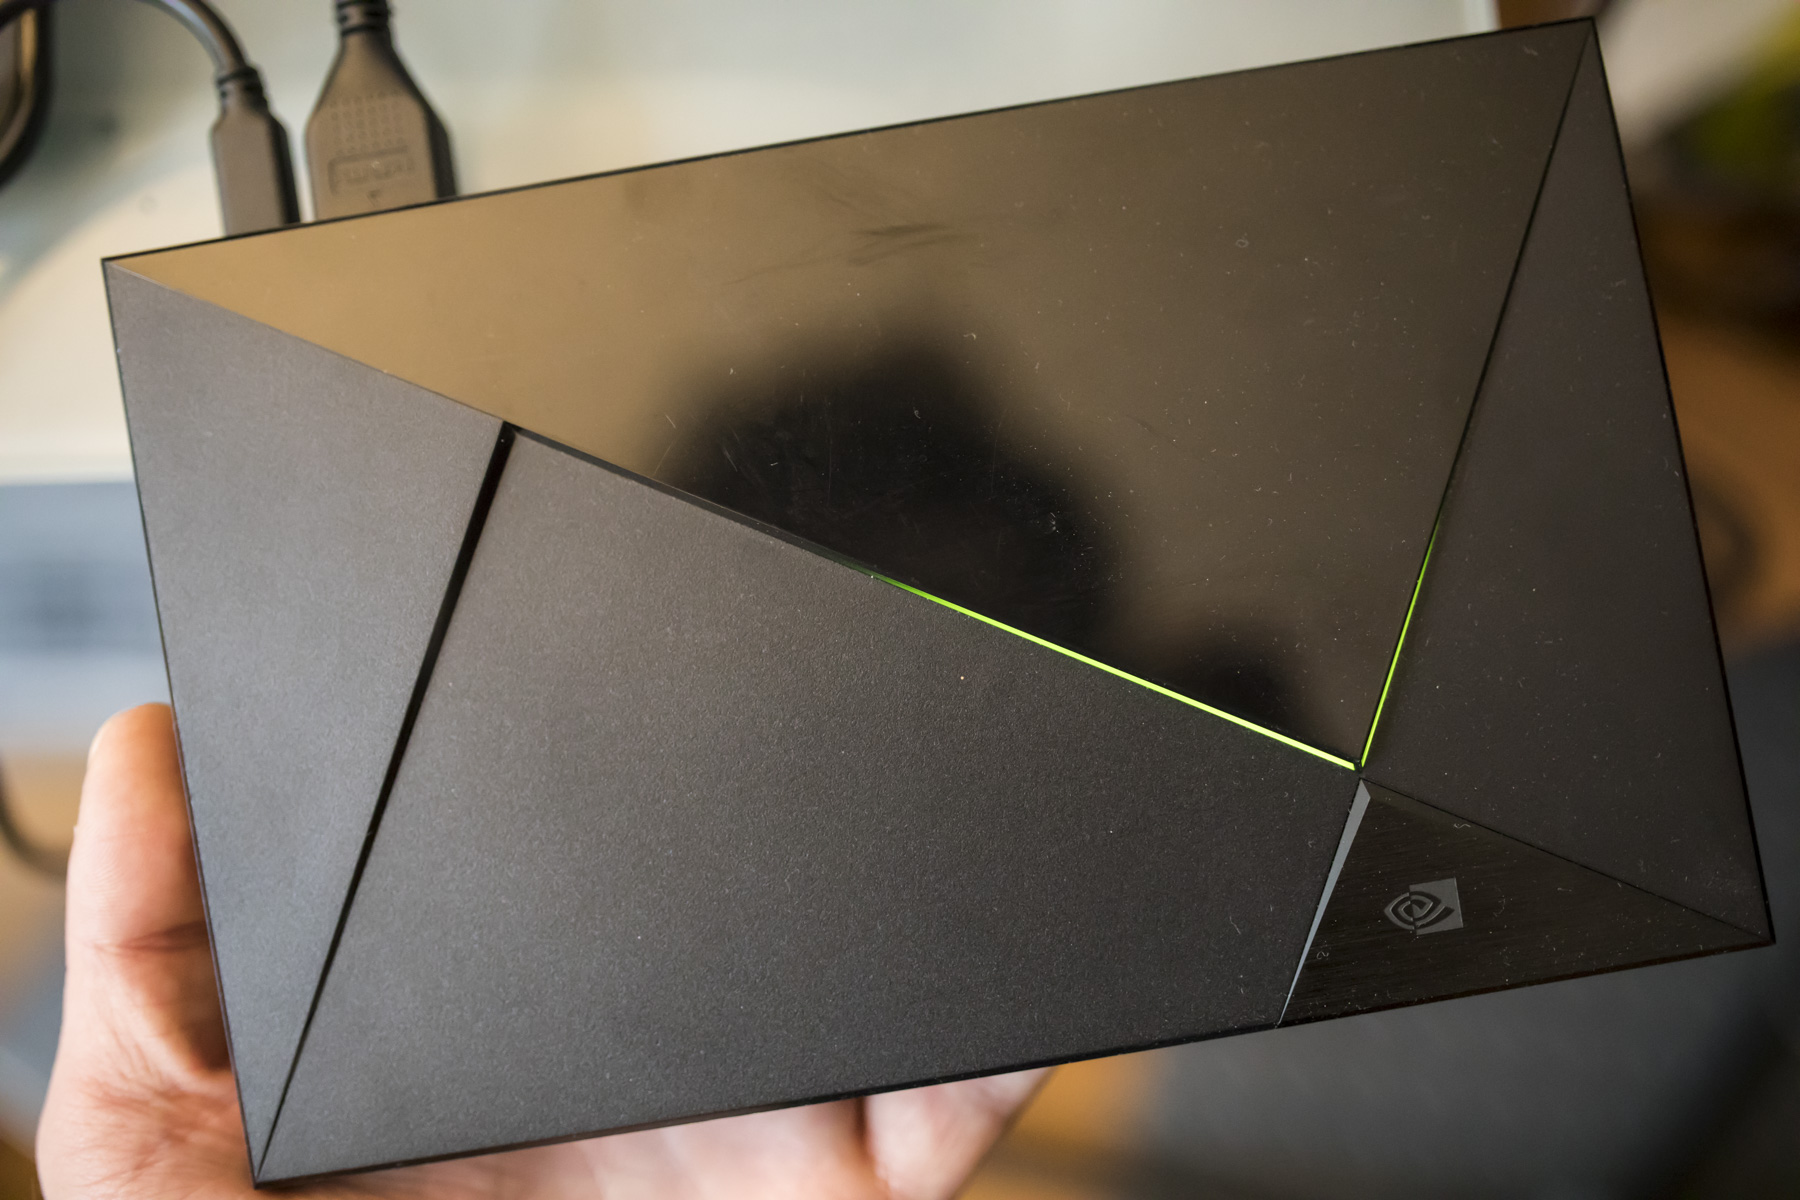 Existing Nvidia Shield TV owners can now update to get 4K